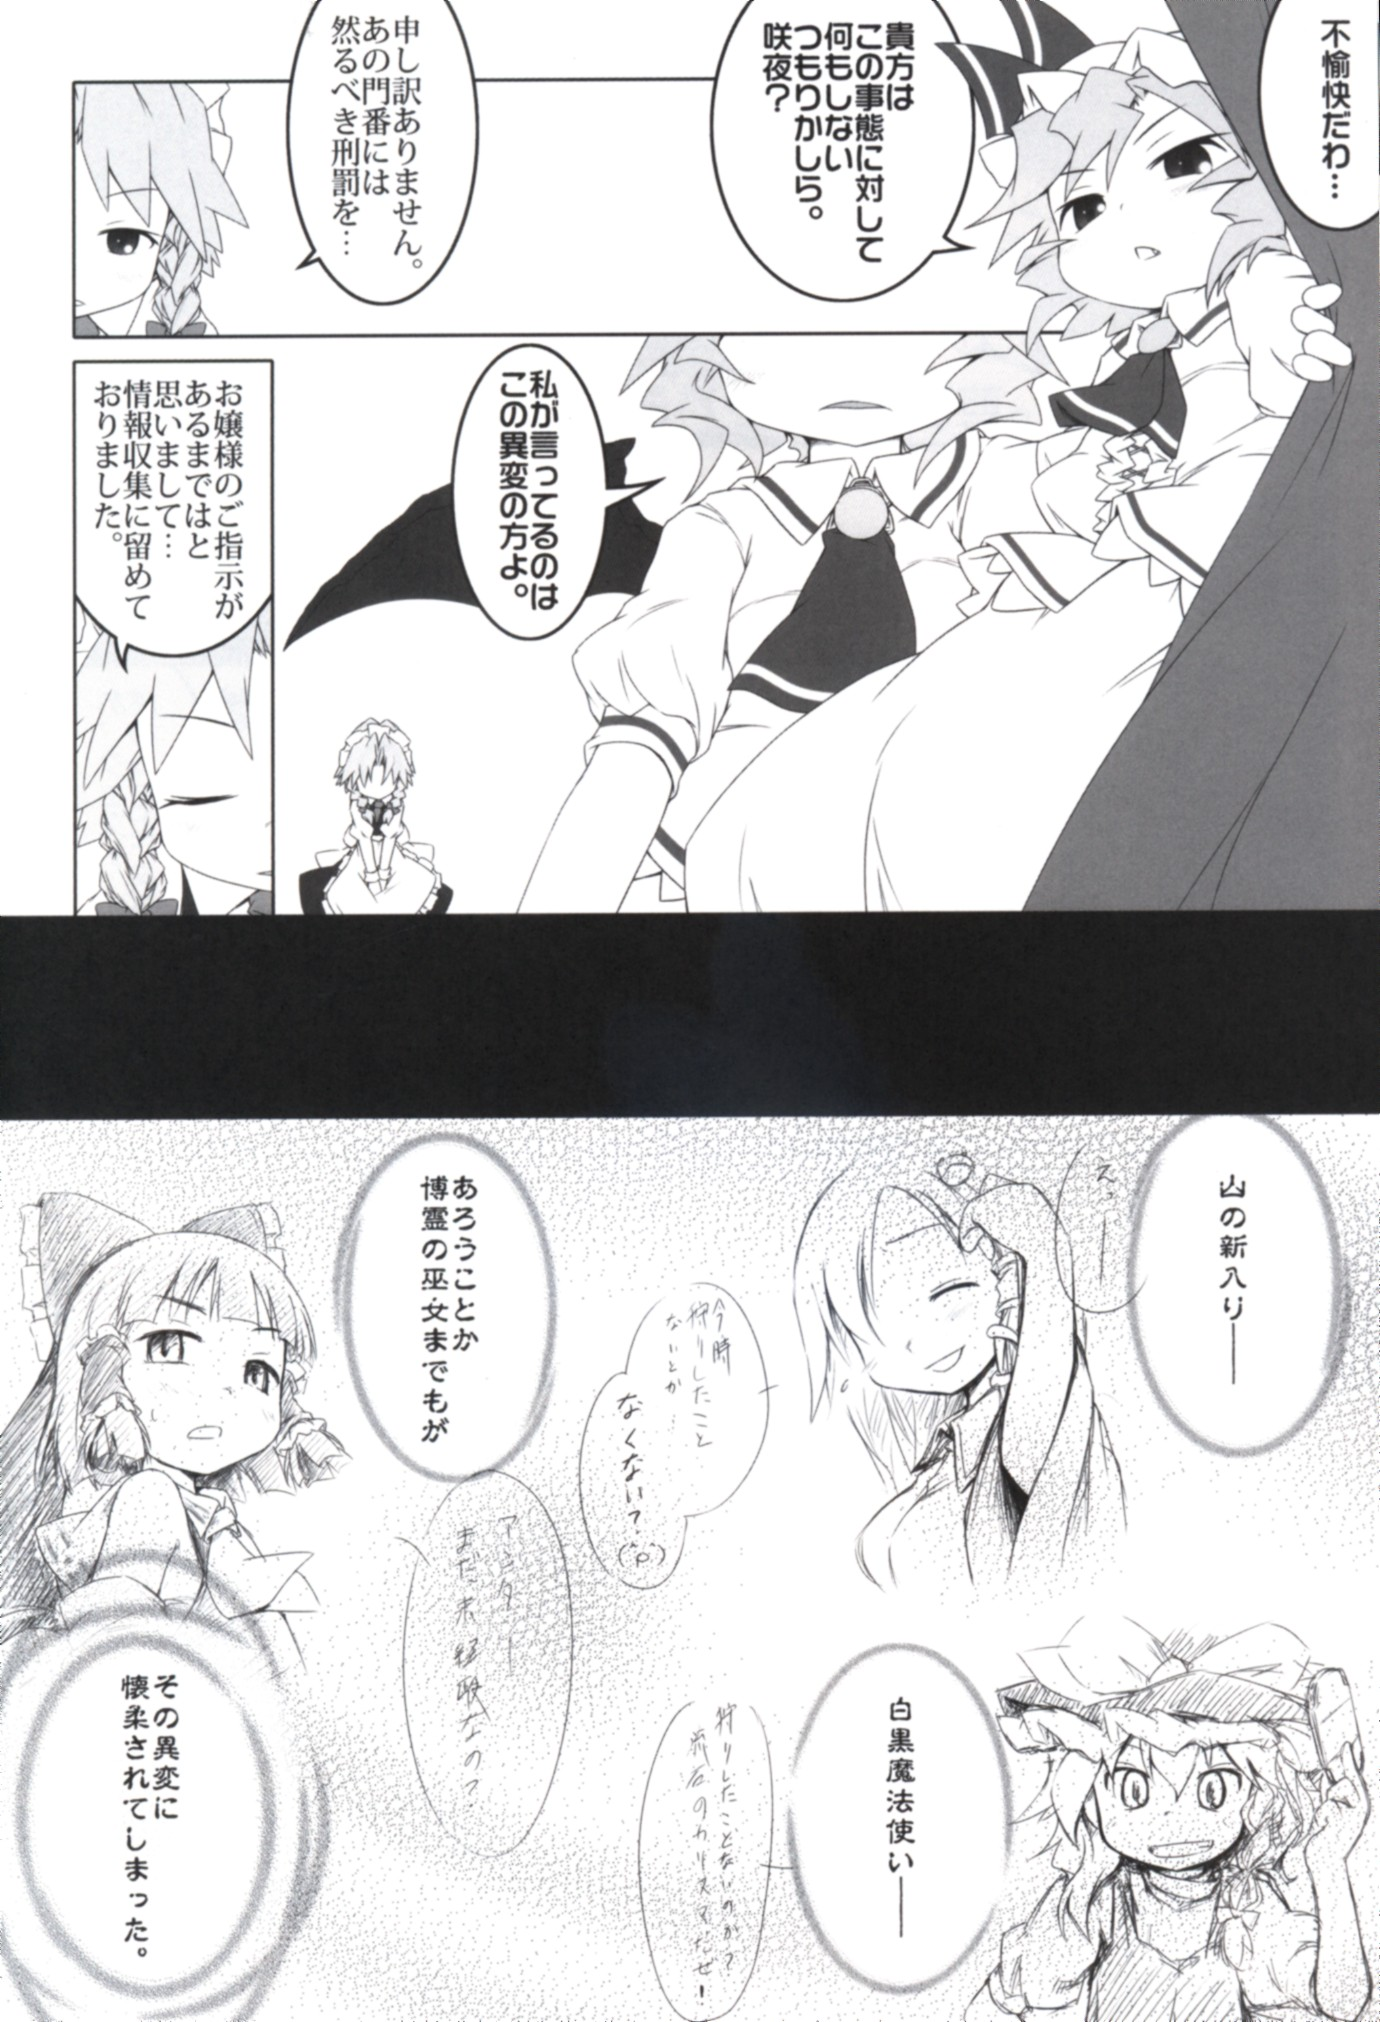 Doujinshi - Touhou Project / Remilia Scarlet (狩ります☆ぶれいくはんたーず) / Points